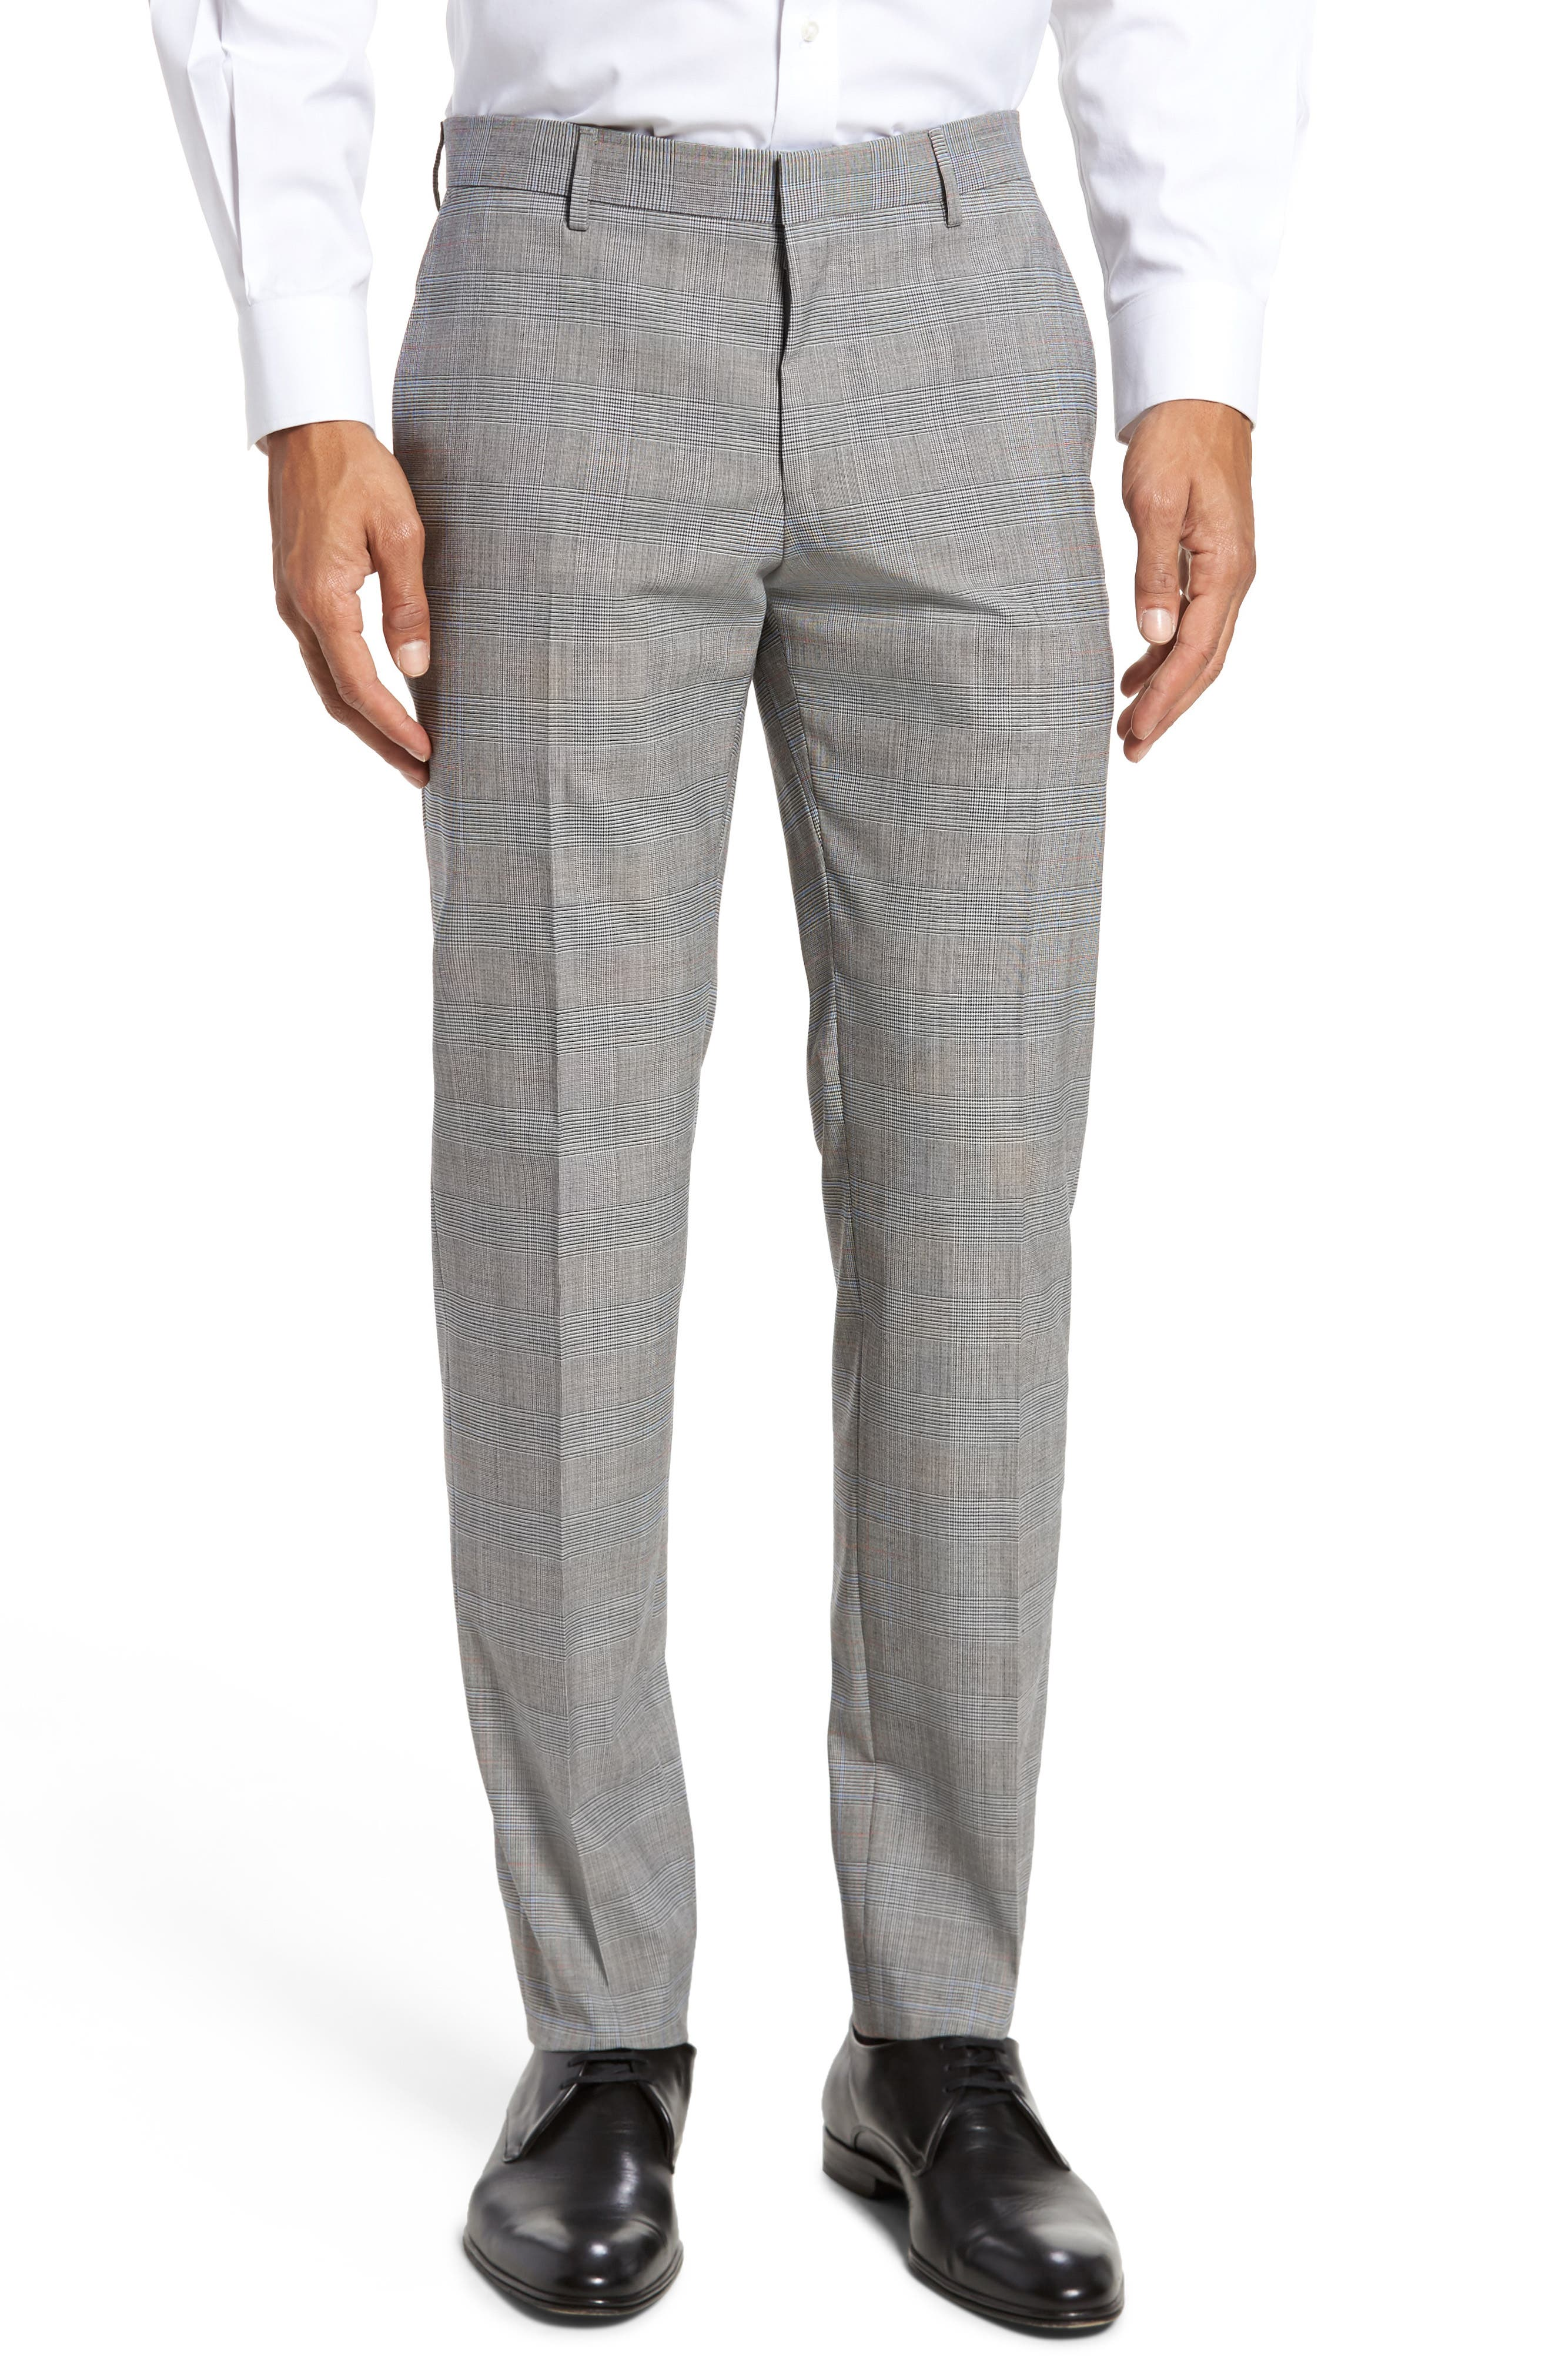 Benso Flat Front Plaid Wool Blend Trousers,                             Main thumbnail 1, color,                             Open Grey